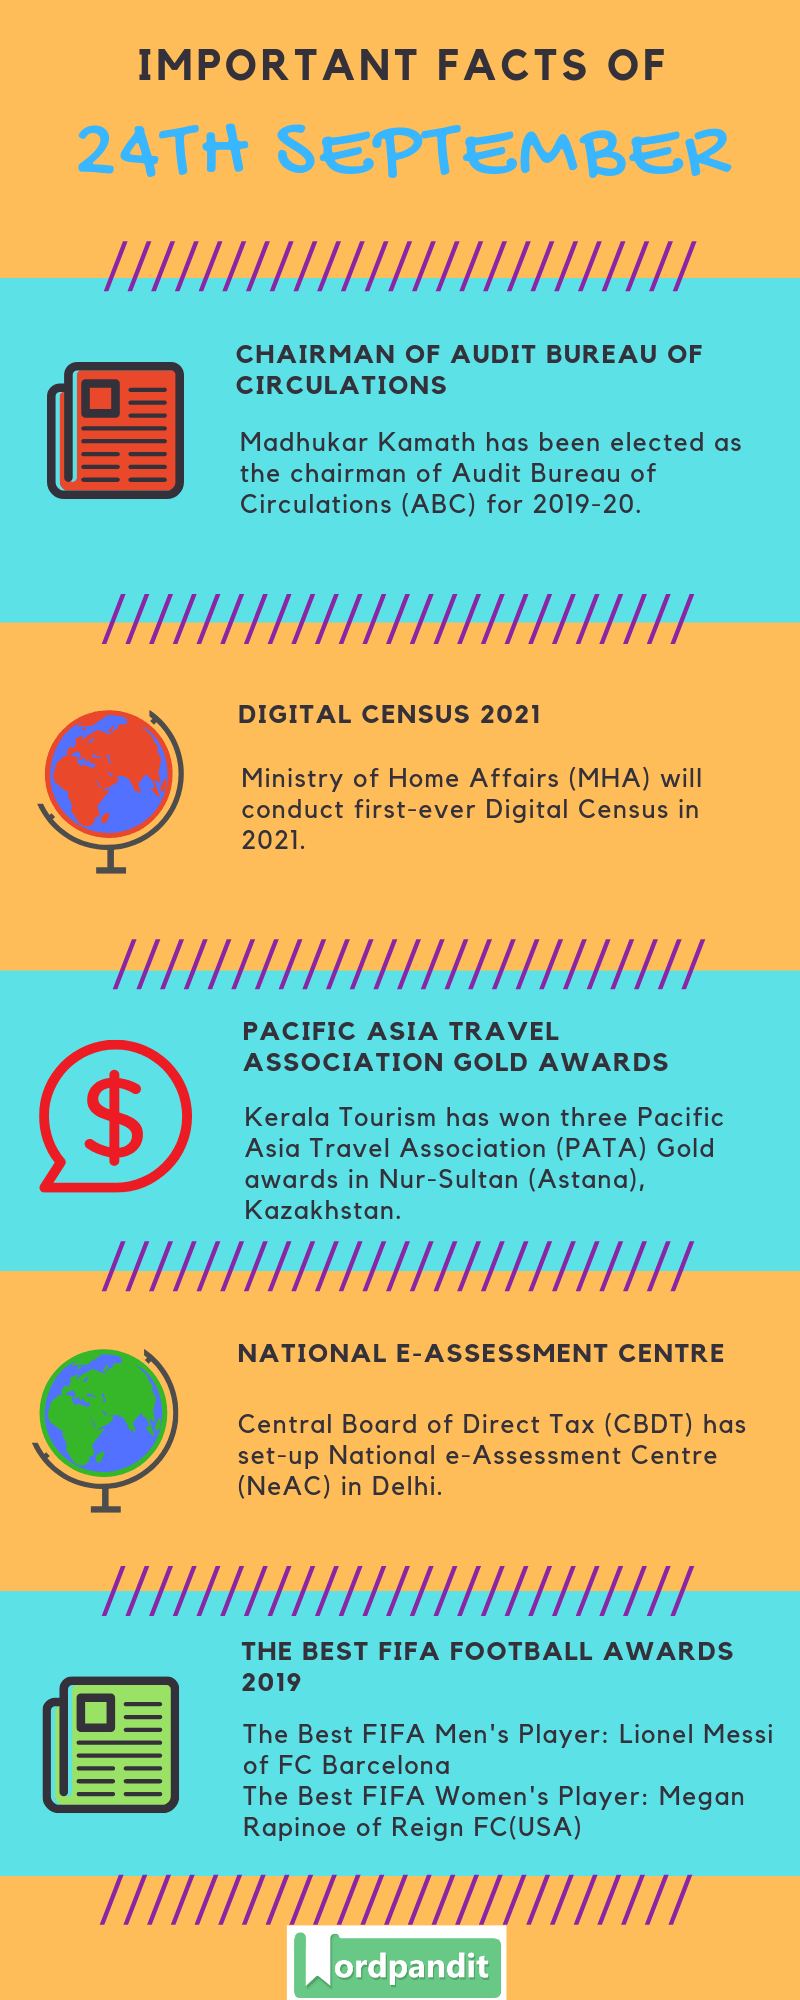 Daily Current Affairs 24 September 2019 Current Affairs Quiz 24 September 2019 Current Affairs Infographic